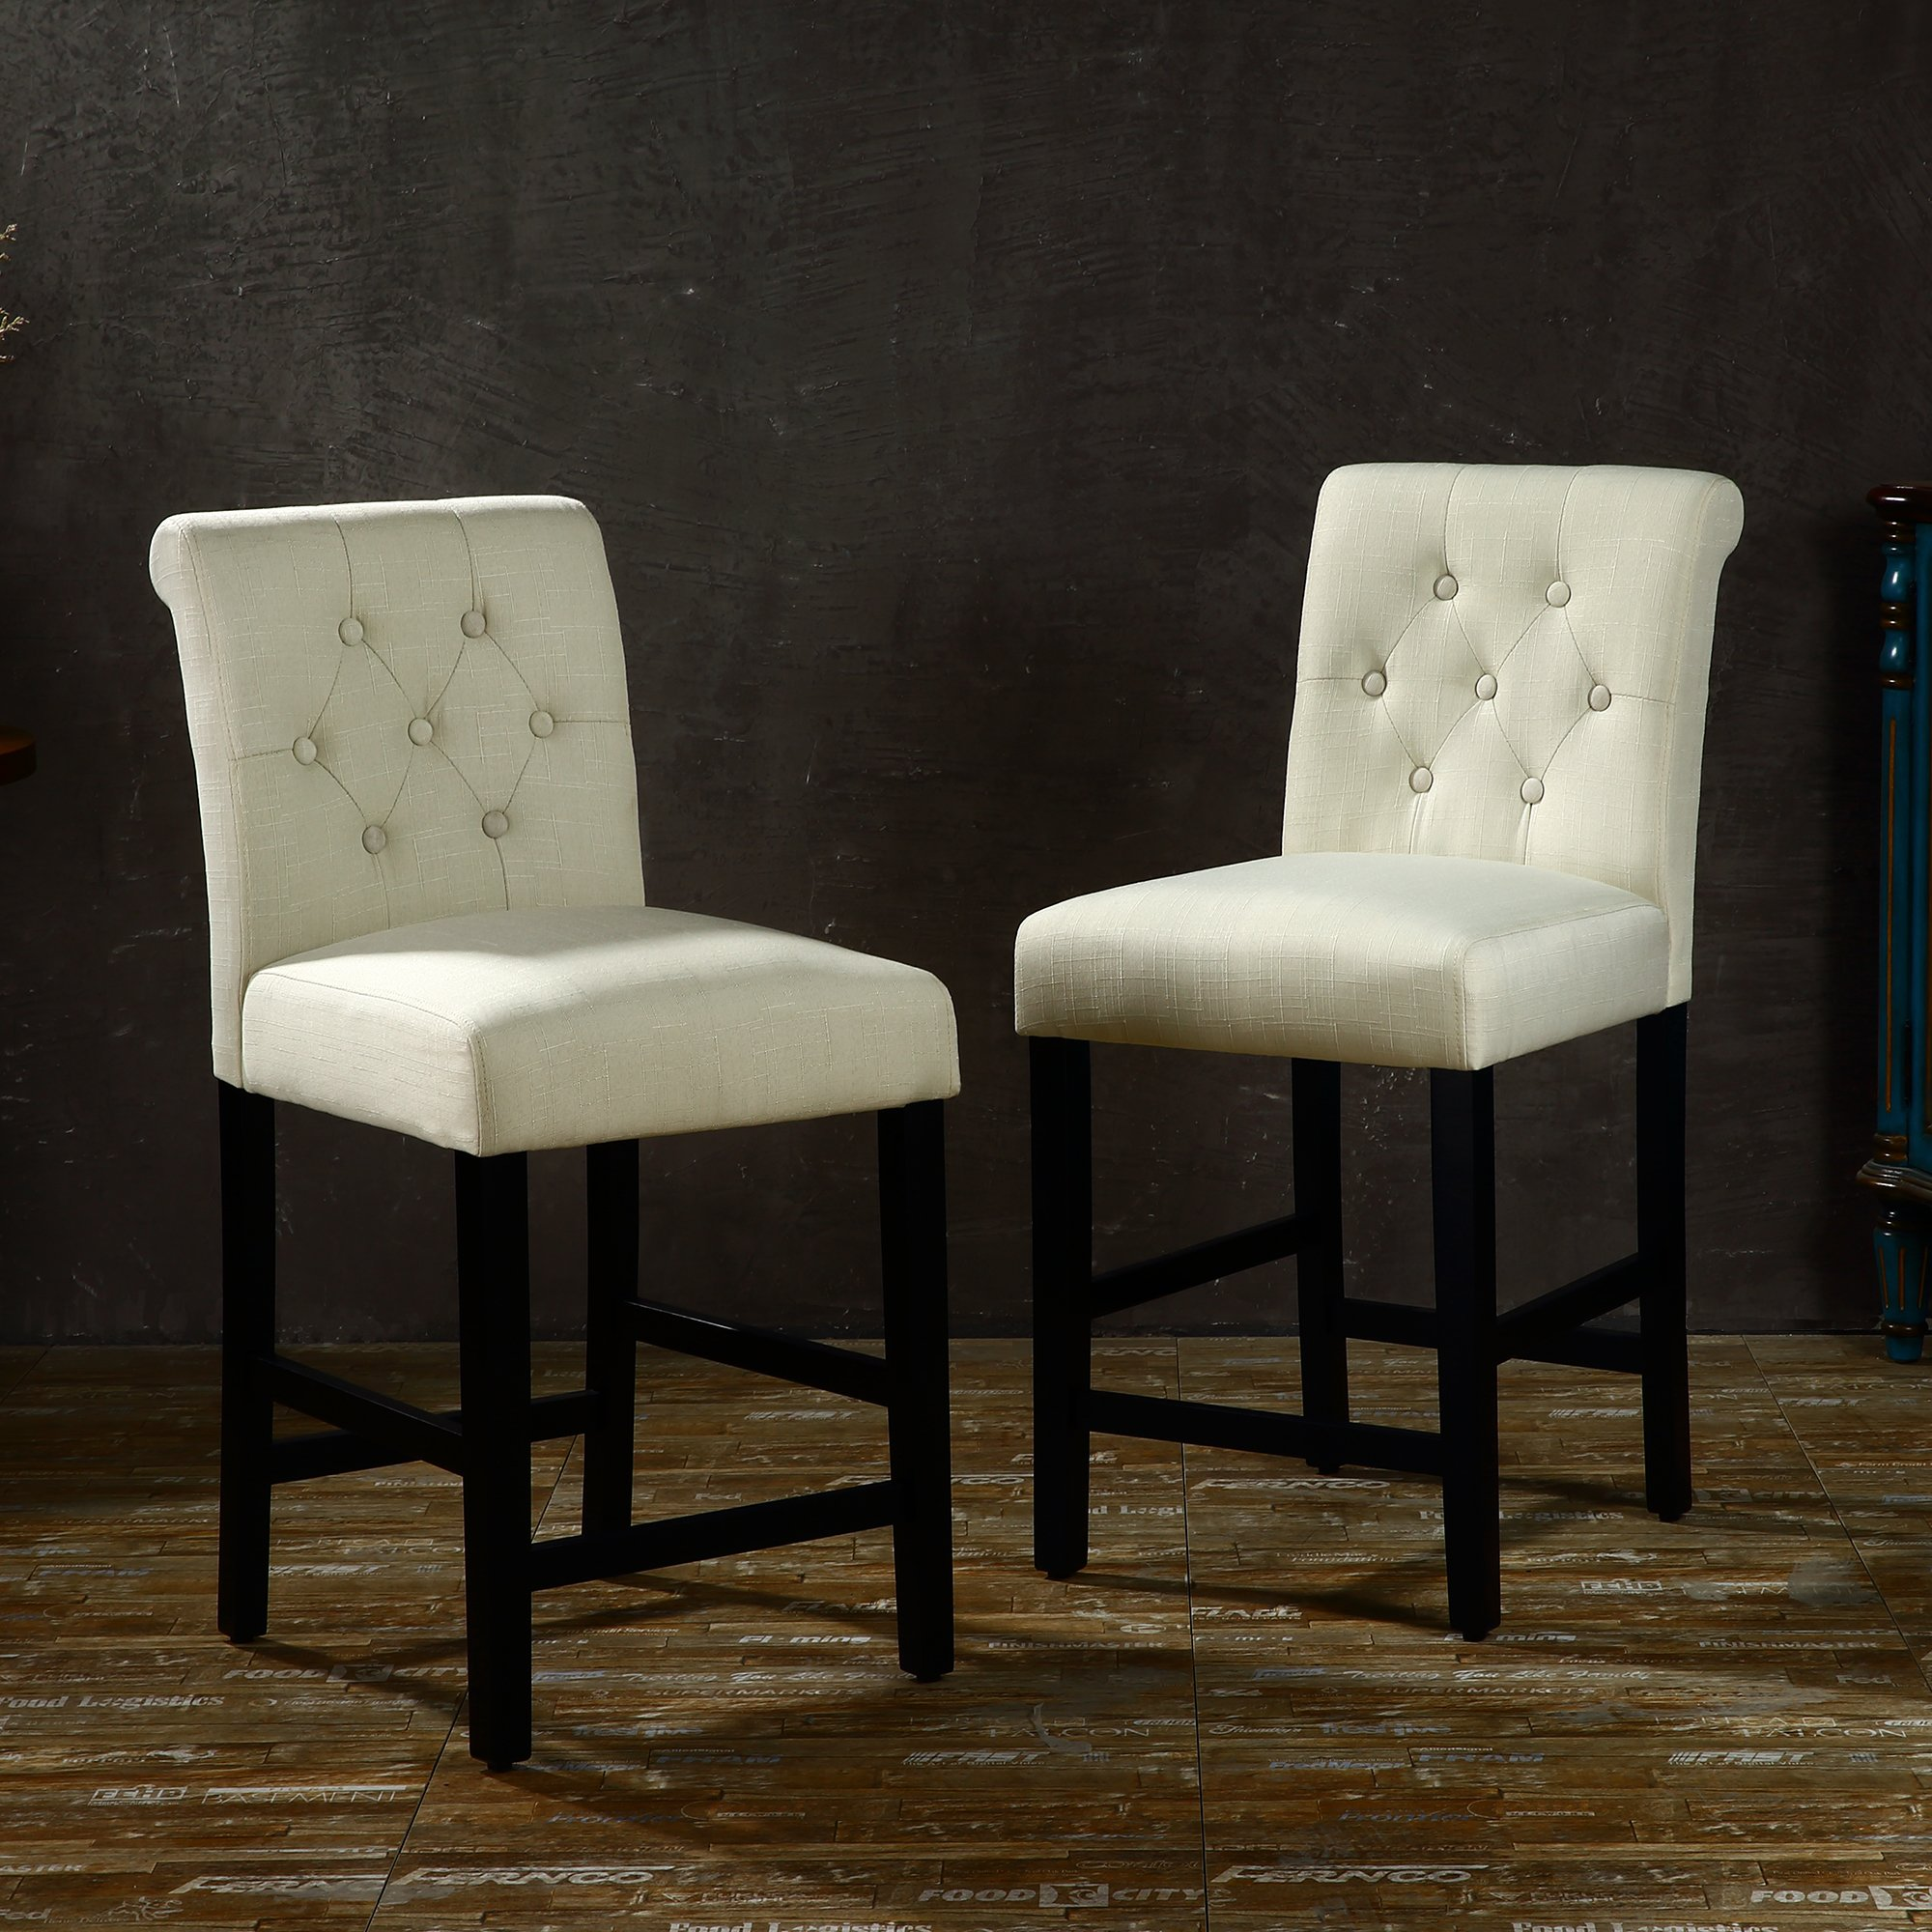 LSSBOUGHT Set of 2 Button-tufted Fabric Barstools Dining High Counter Height Side Chairs (Seat Height: 24'', Beige)